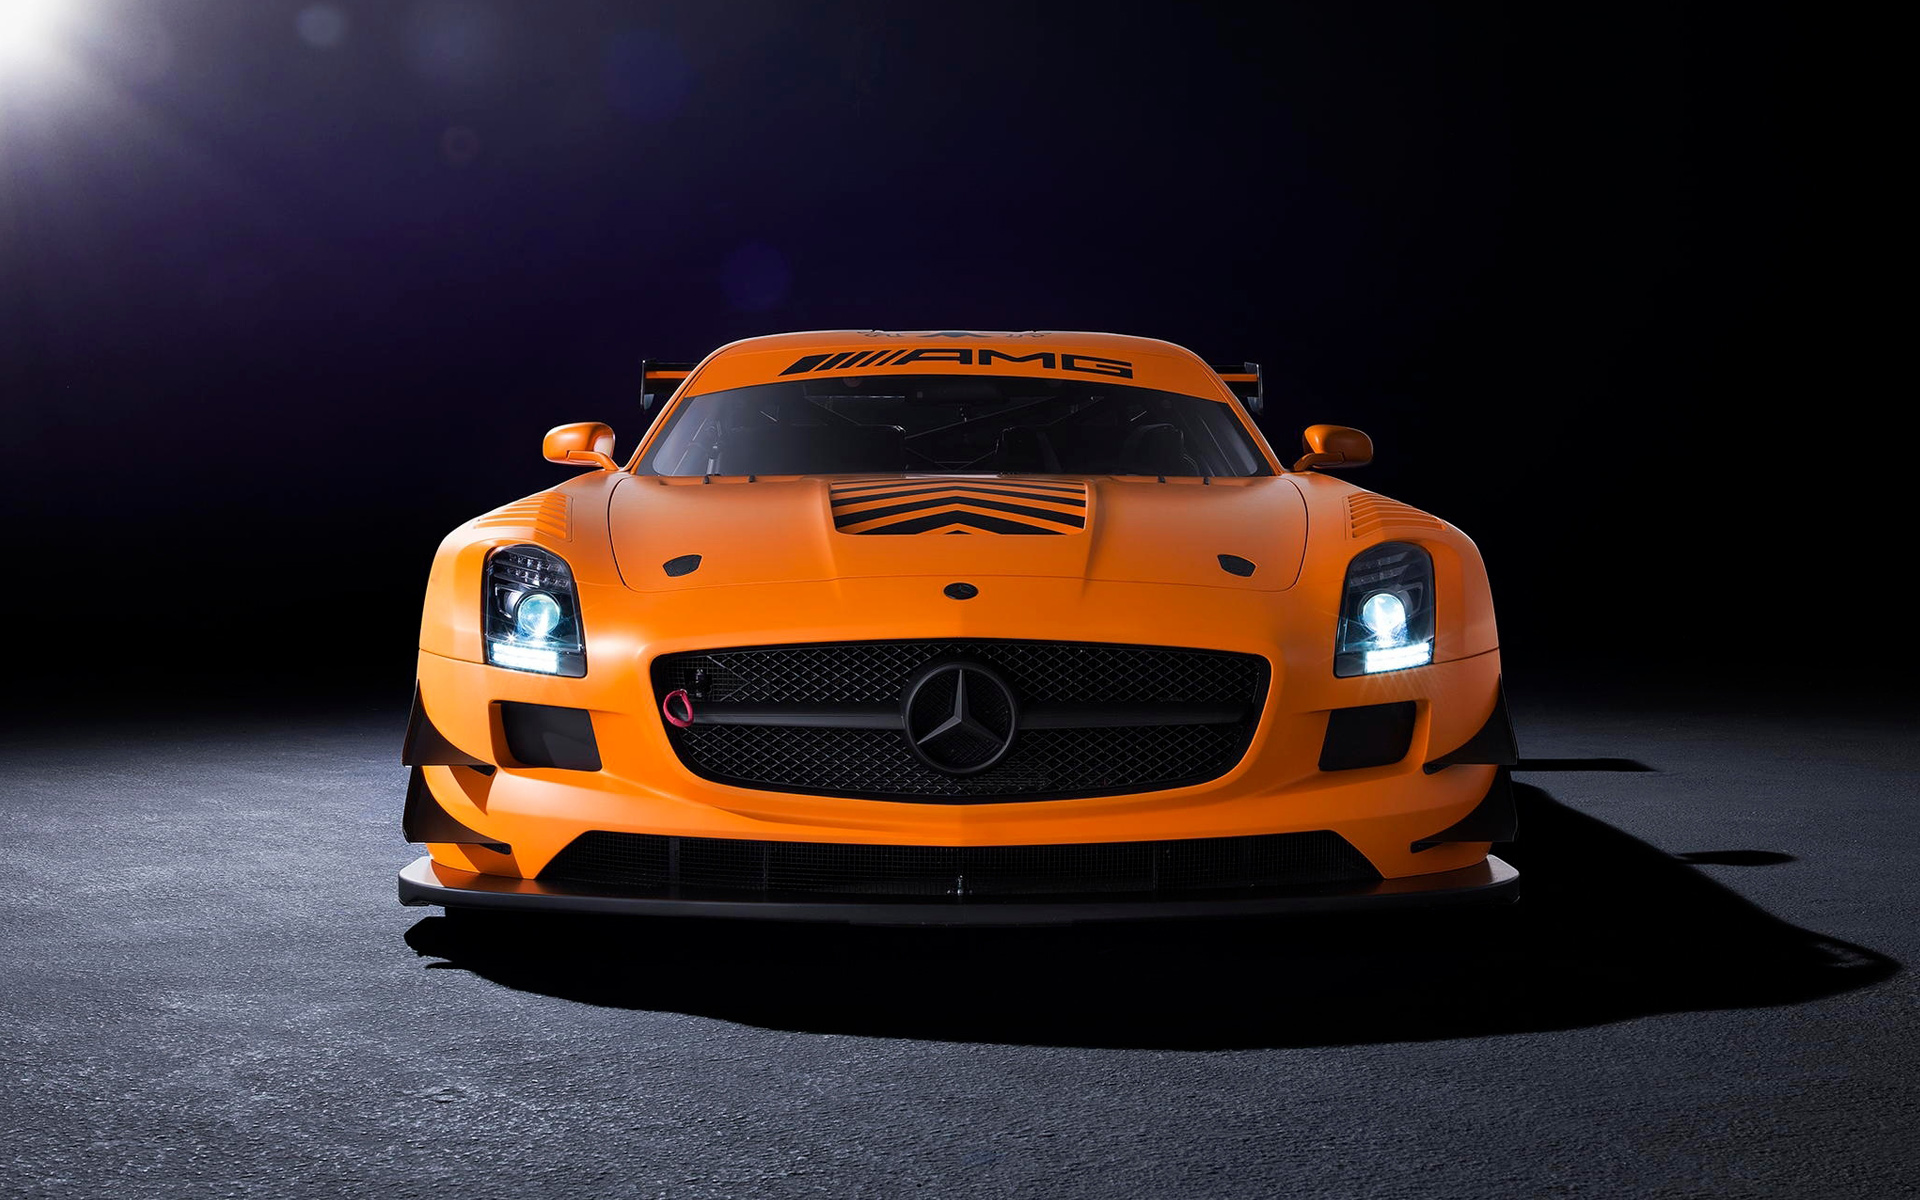 Mercedes Amg Sls Gt3 45th Anniversary Edition Wallpapers Wallpapers Hd